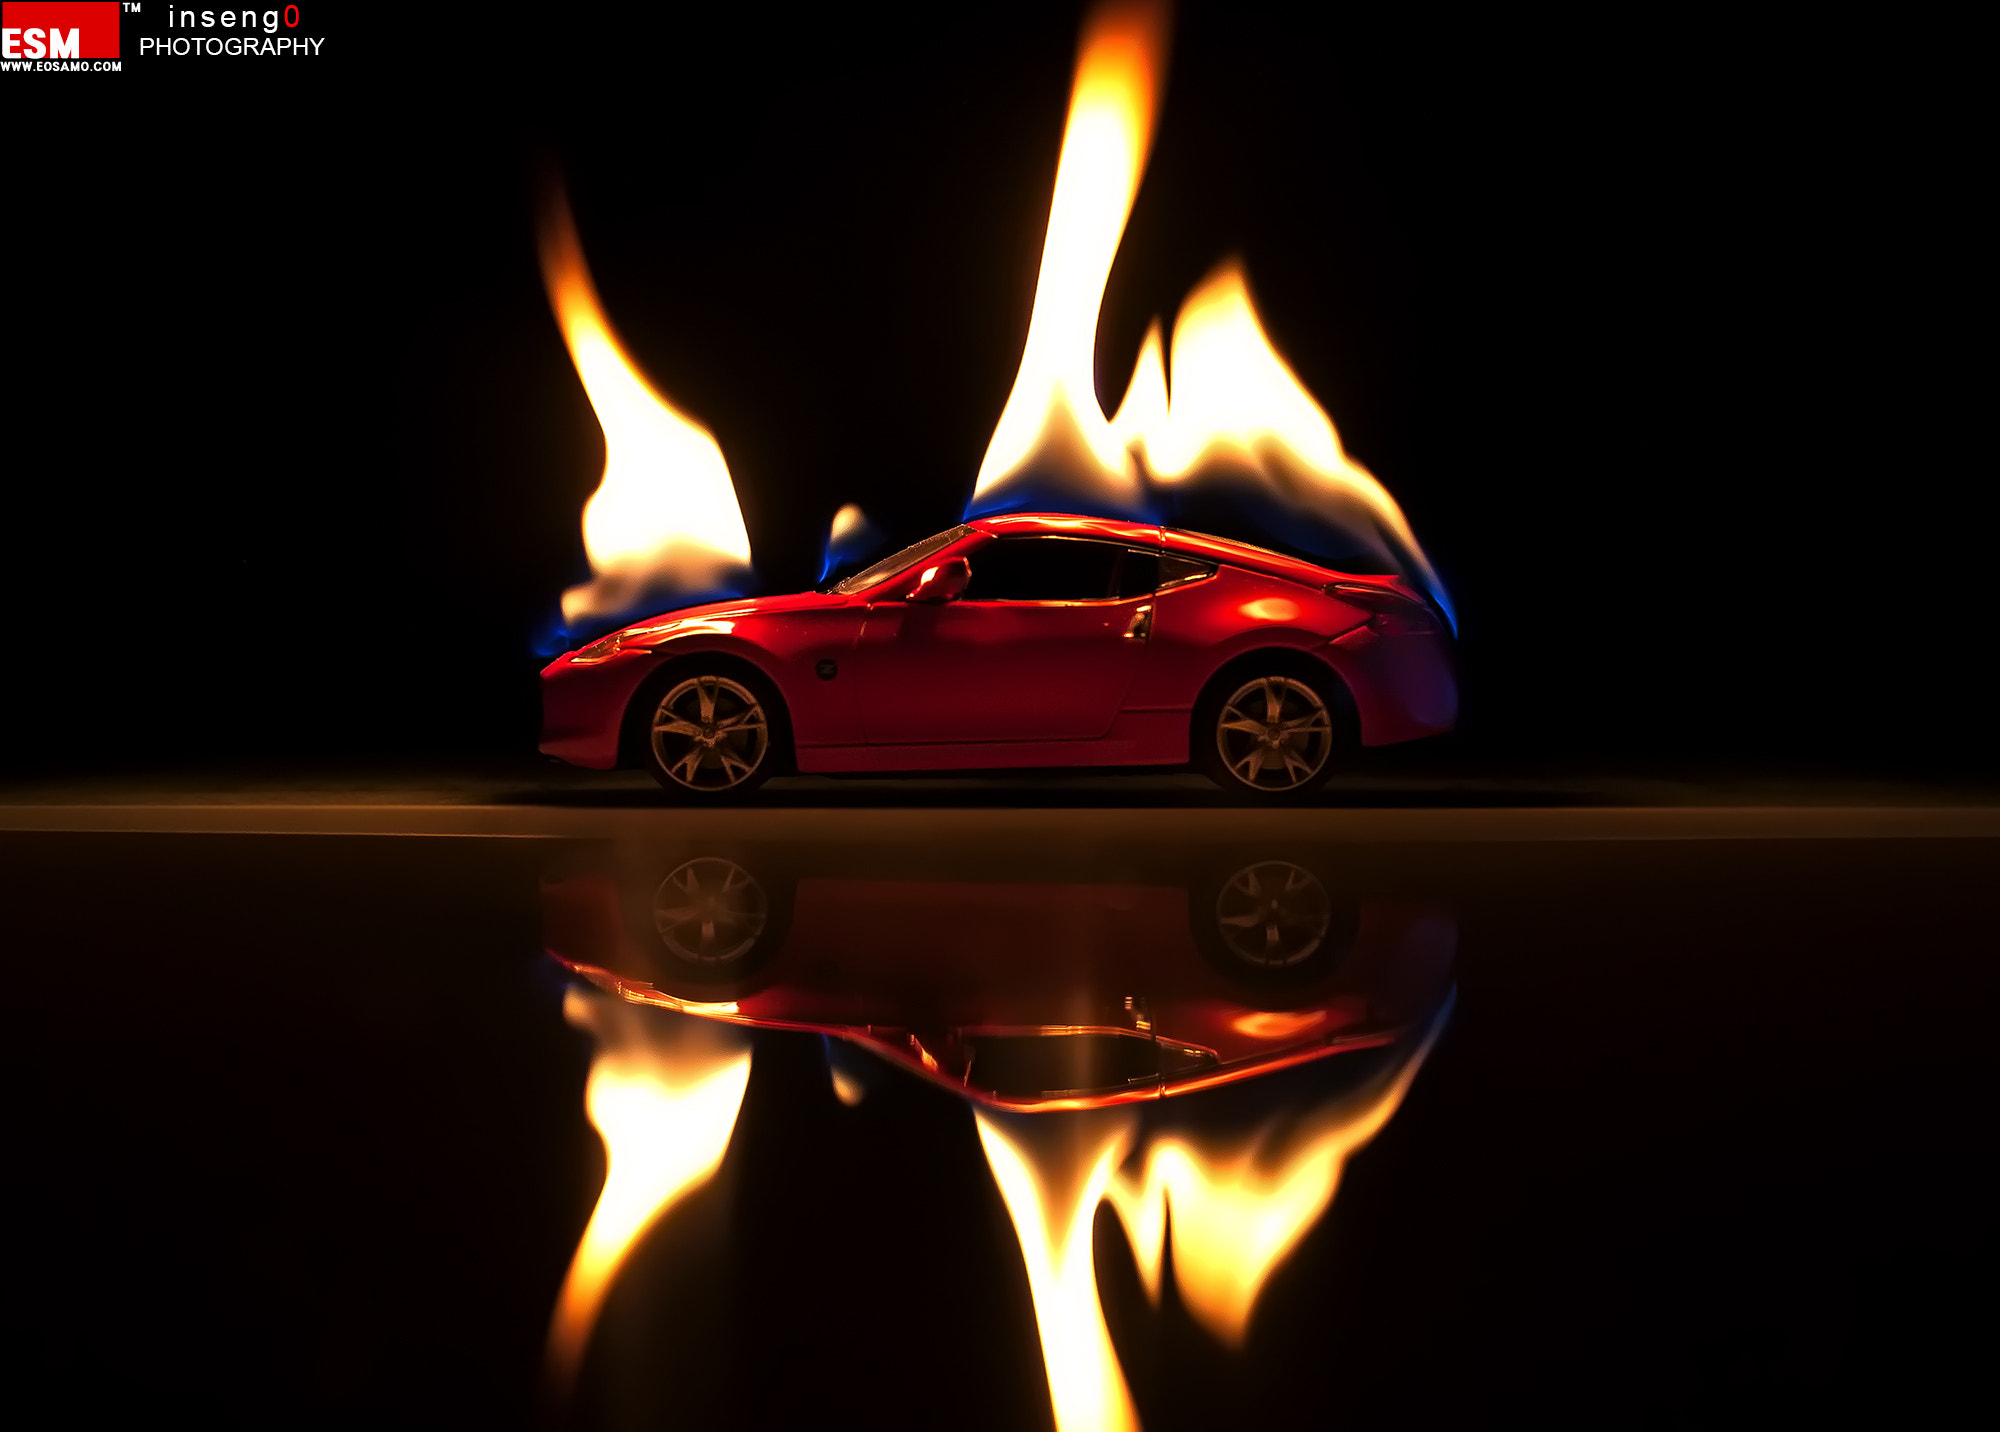 Photograph Fire Car by chan-wook Kim on 500px